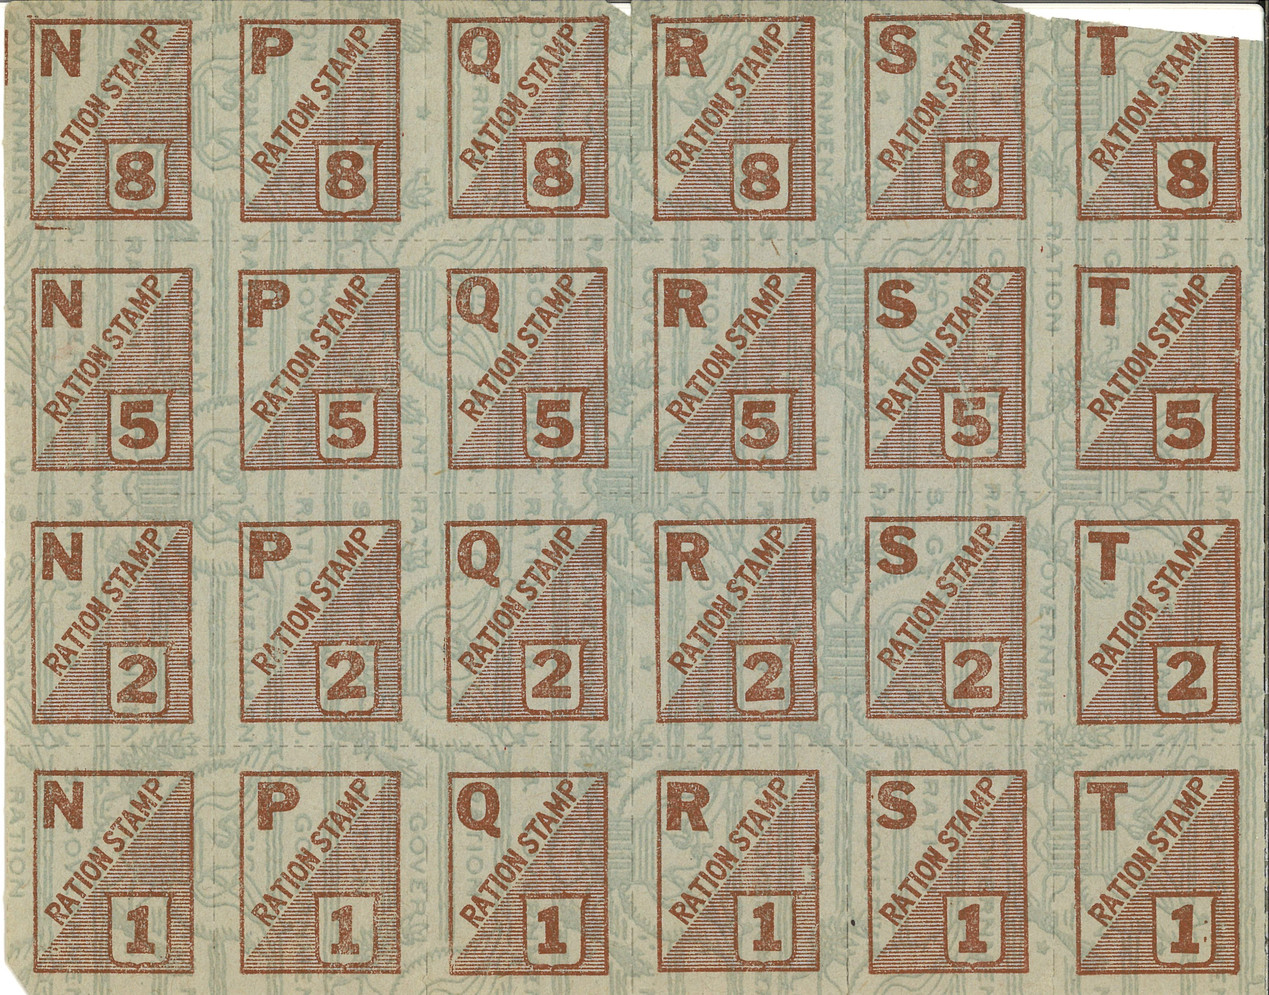 War Rations Book Stamps